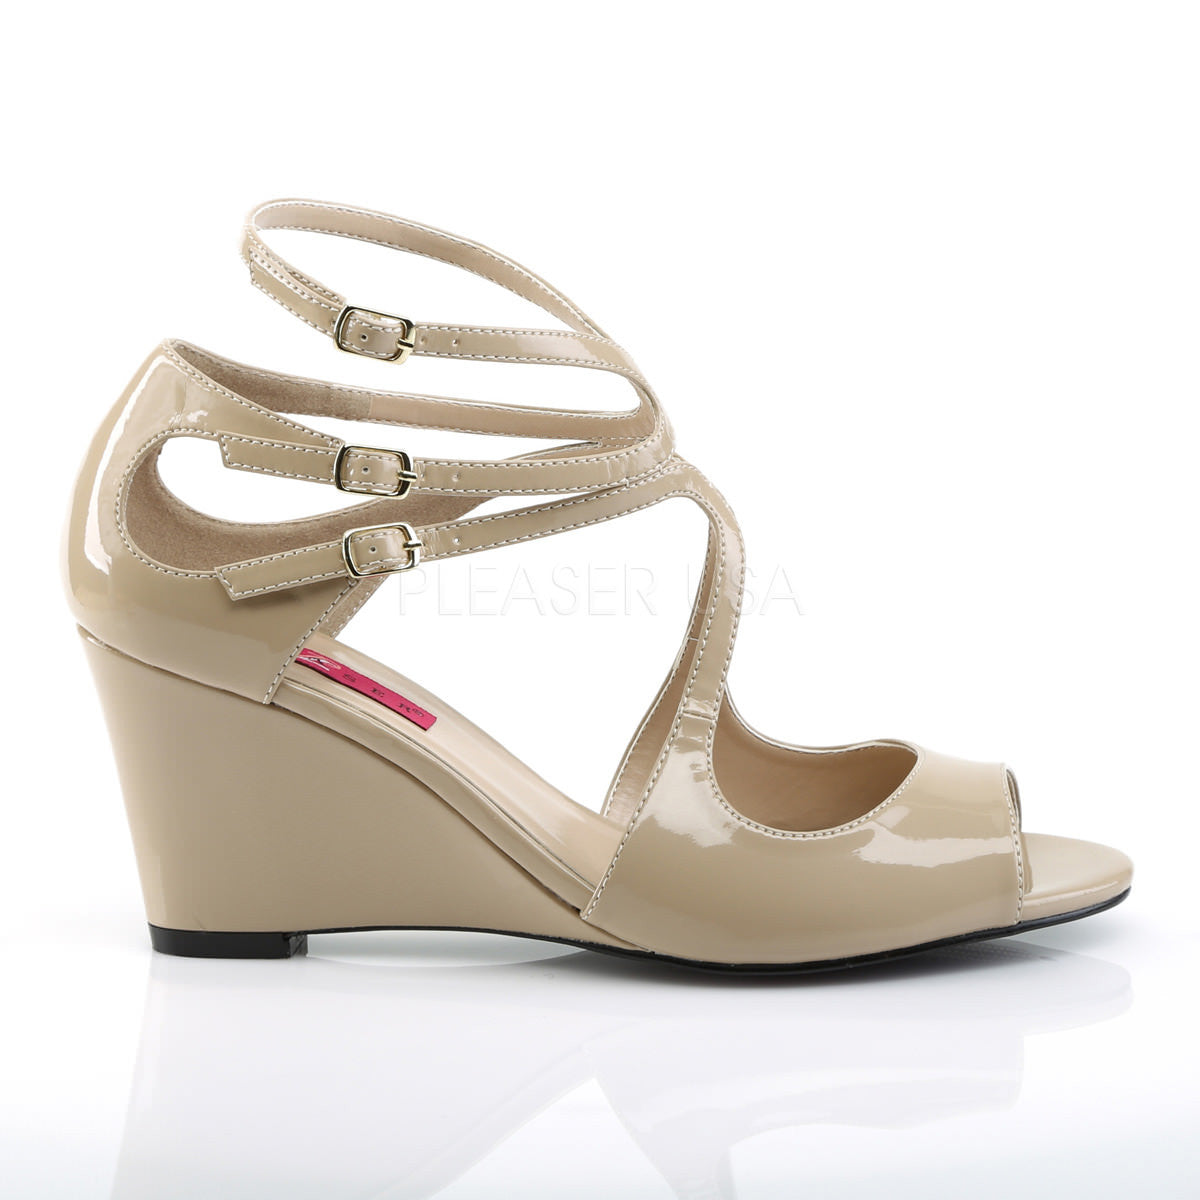 7ef449091a8e4a Pleaser Pink Label KIMBERLY-04 Cream Pat Wedge Sandals